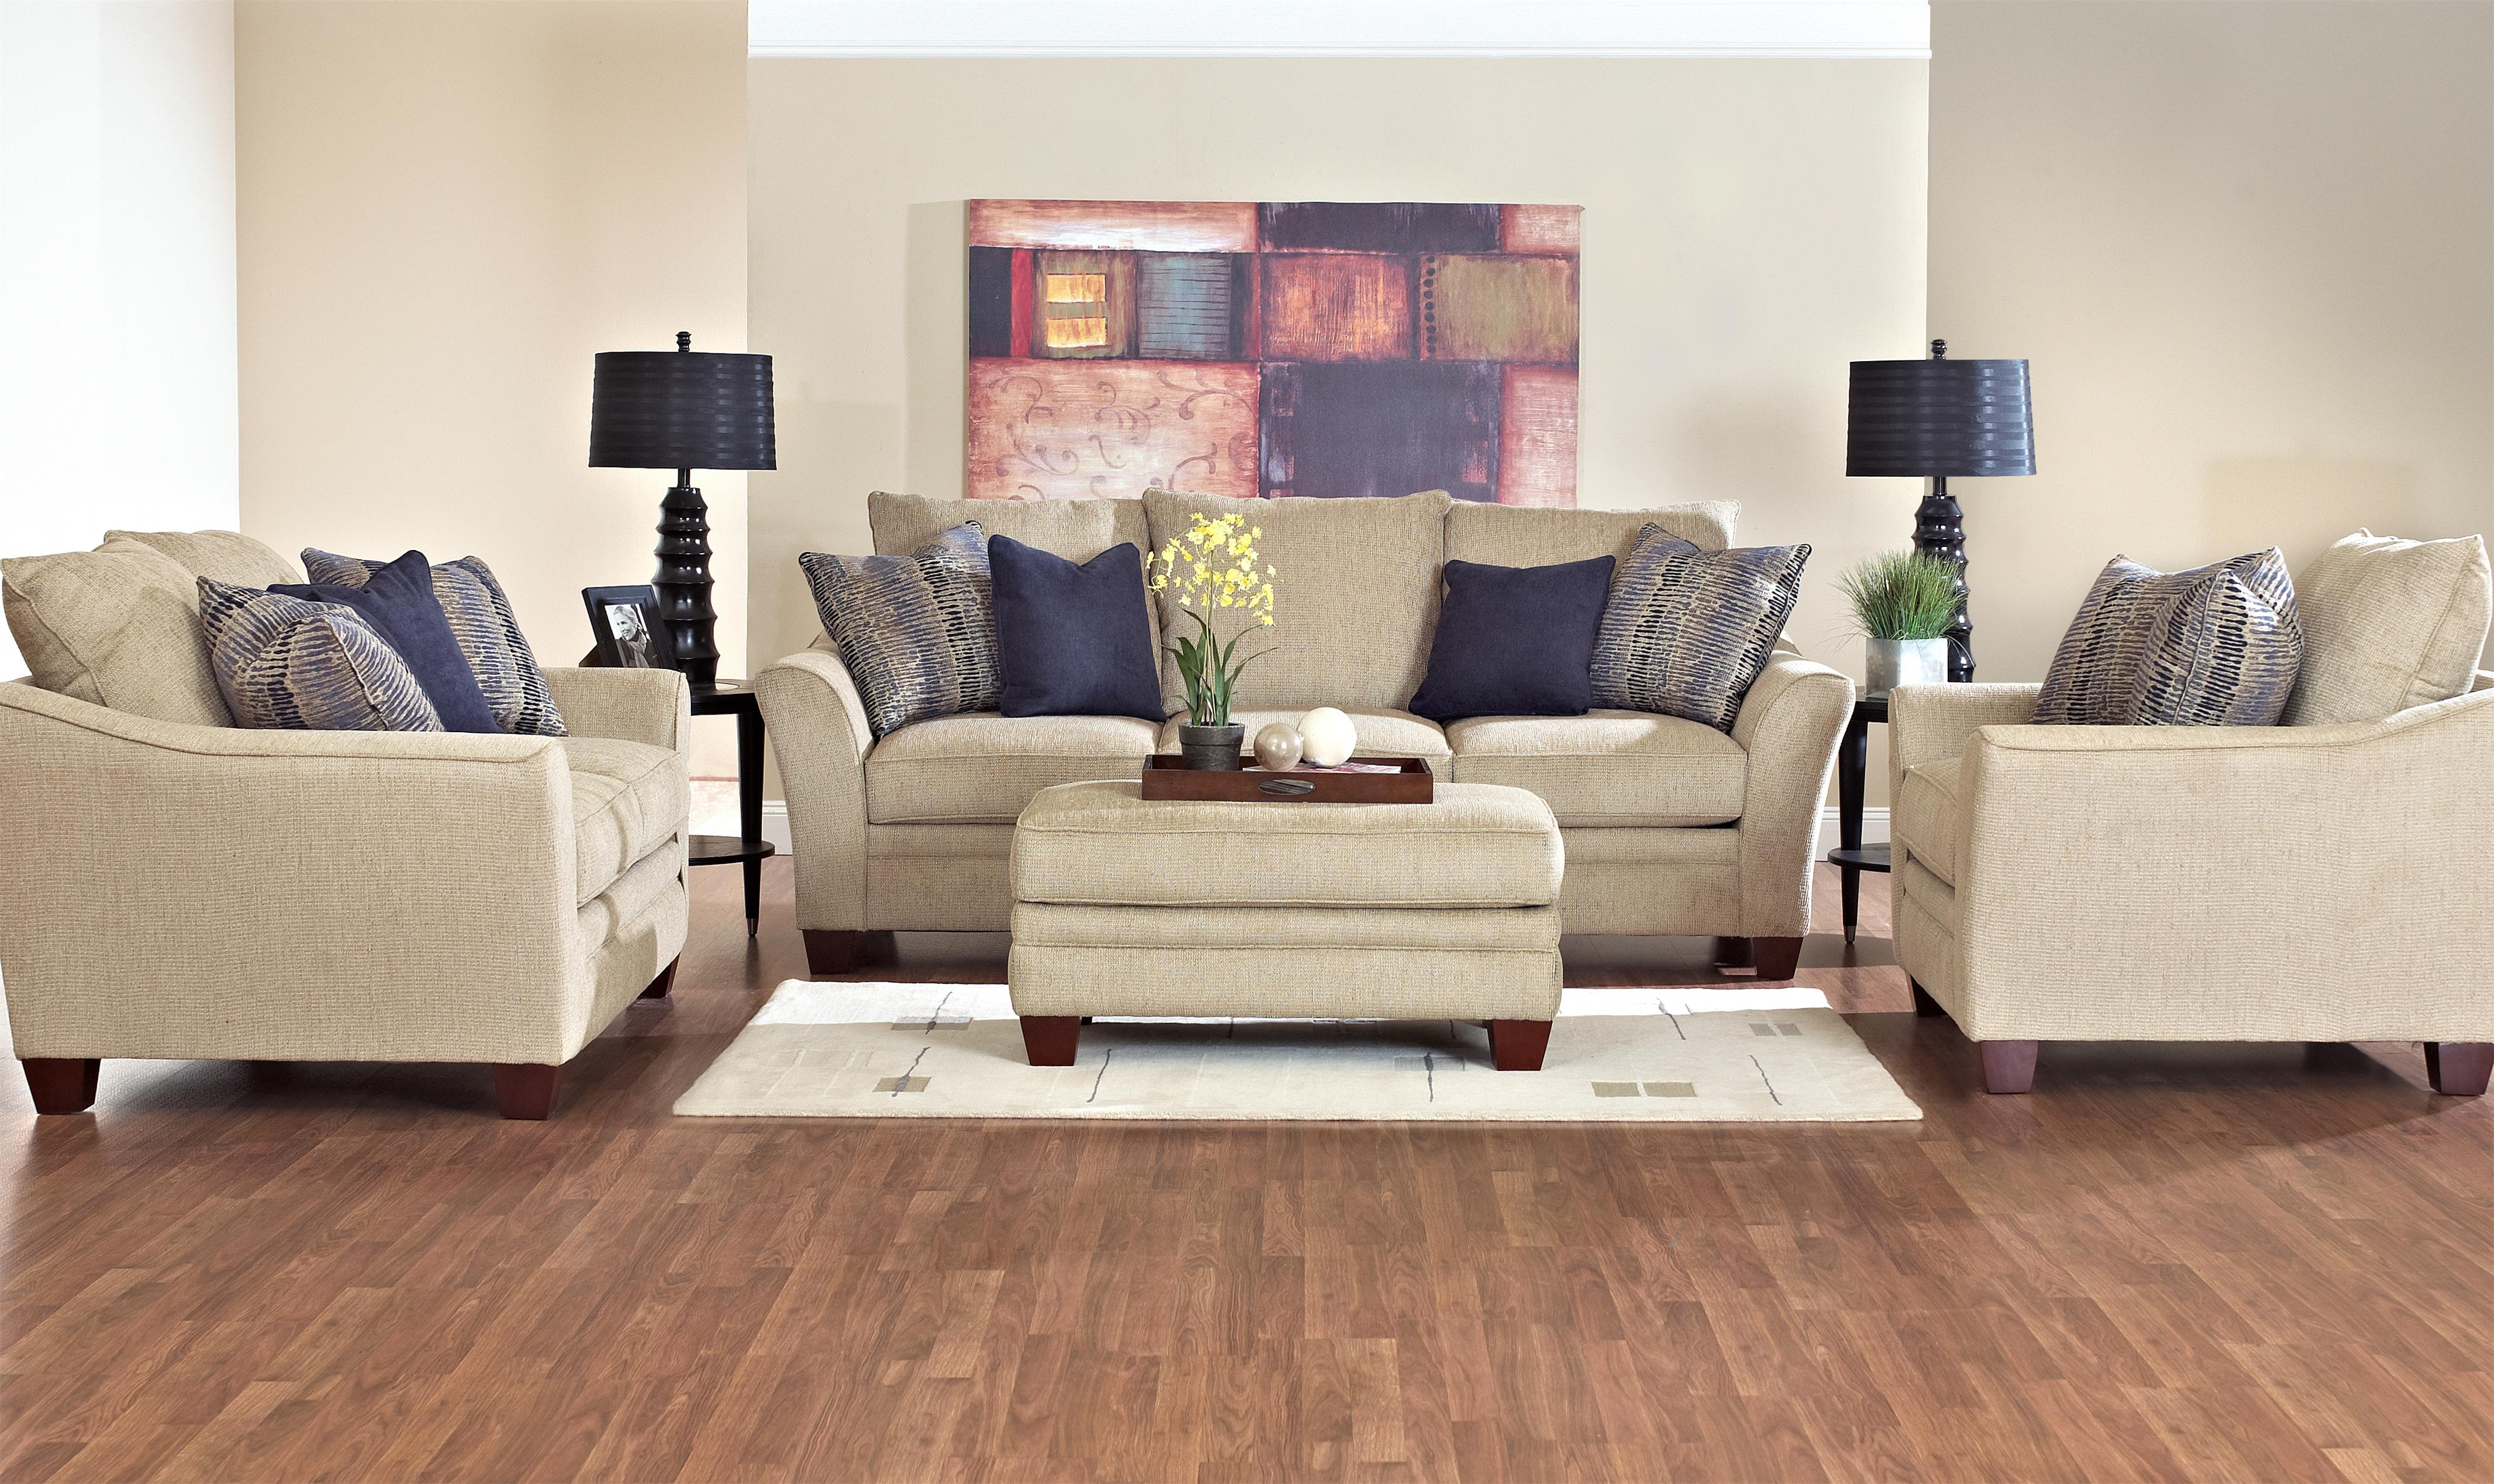 Contemporary Sofa With Block Feet By Klaussner Wolf And Gardiner Wolf Furniture